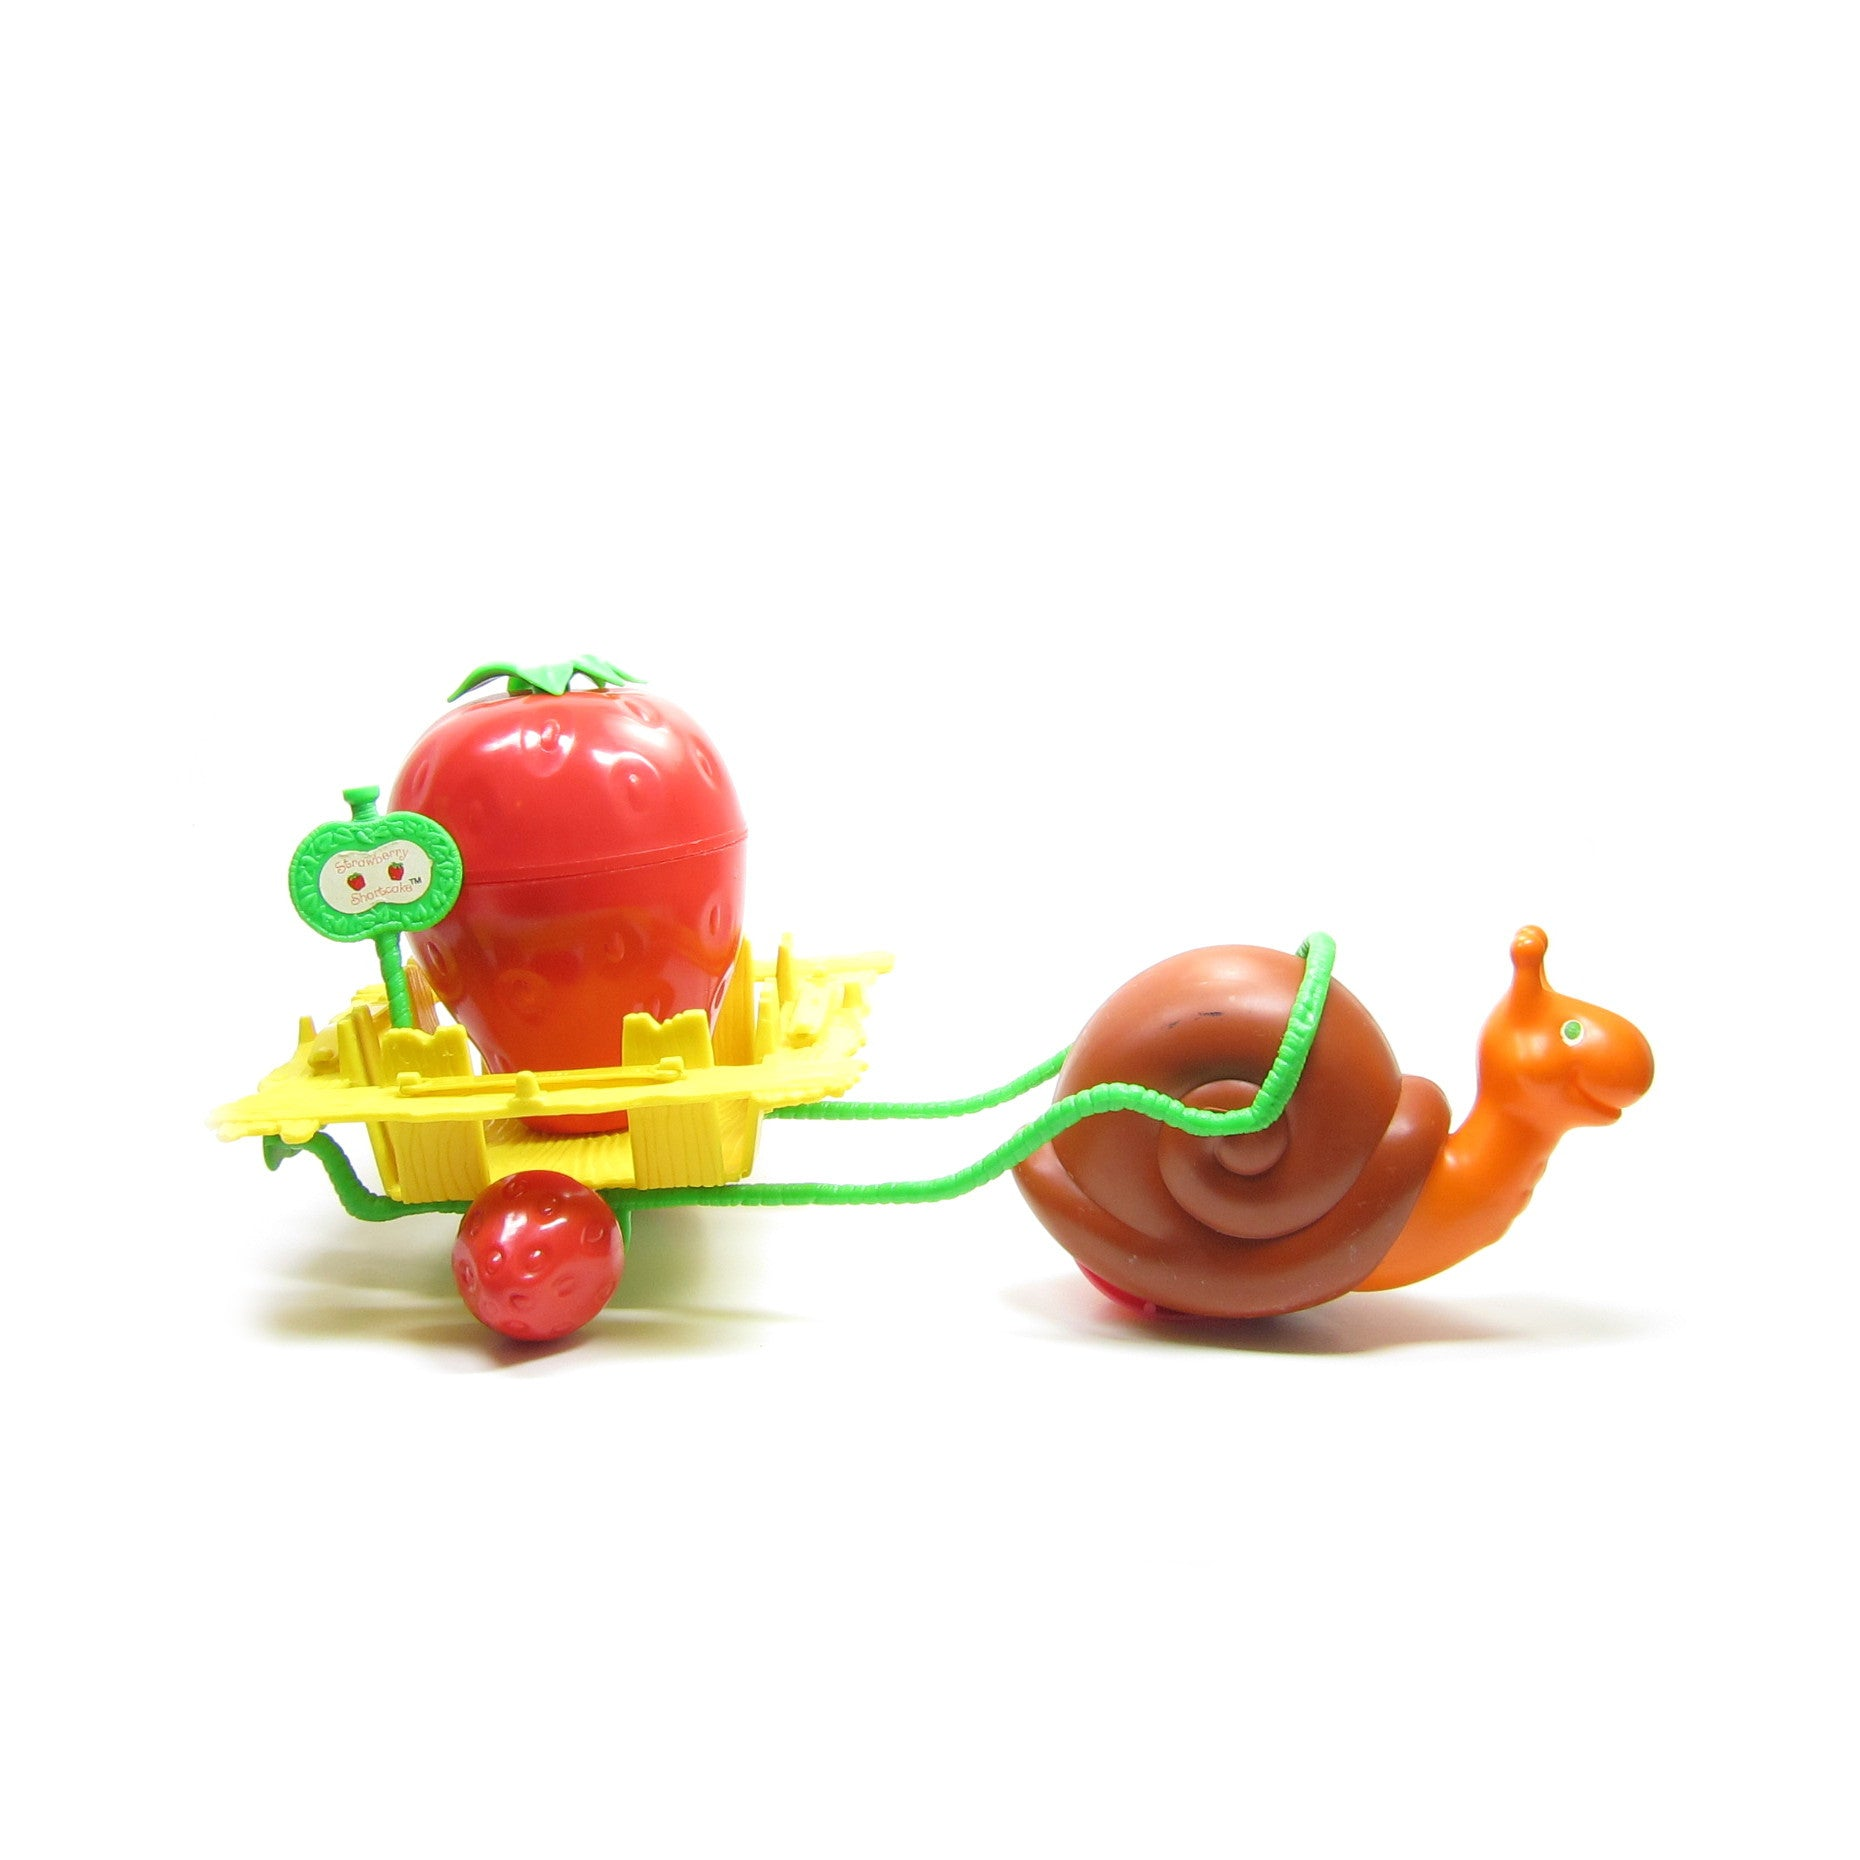 Strawberry Shortcake Snail Cart playset